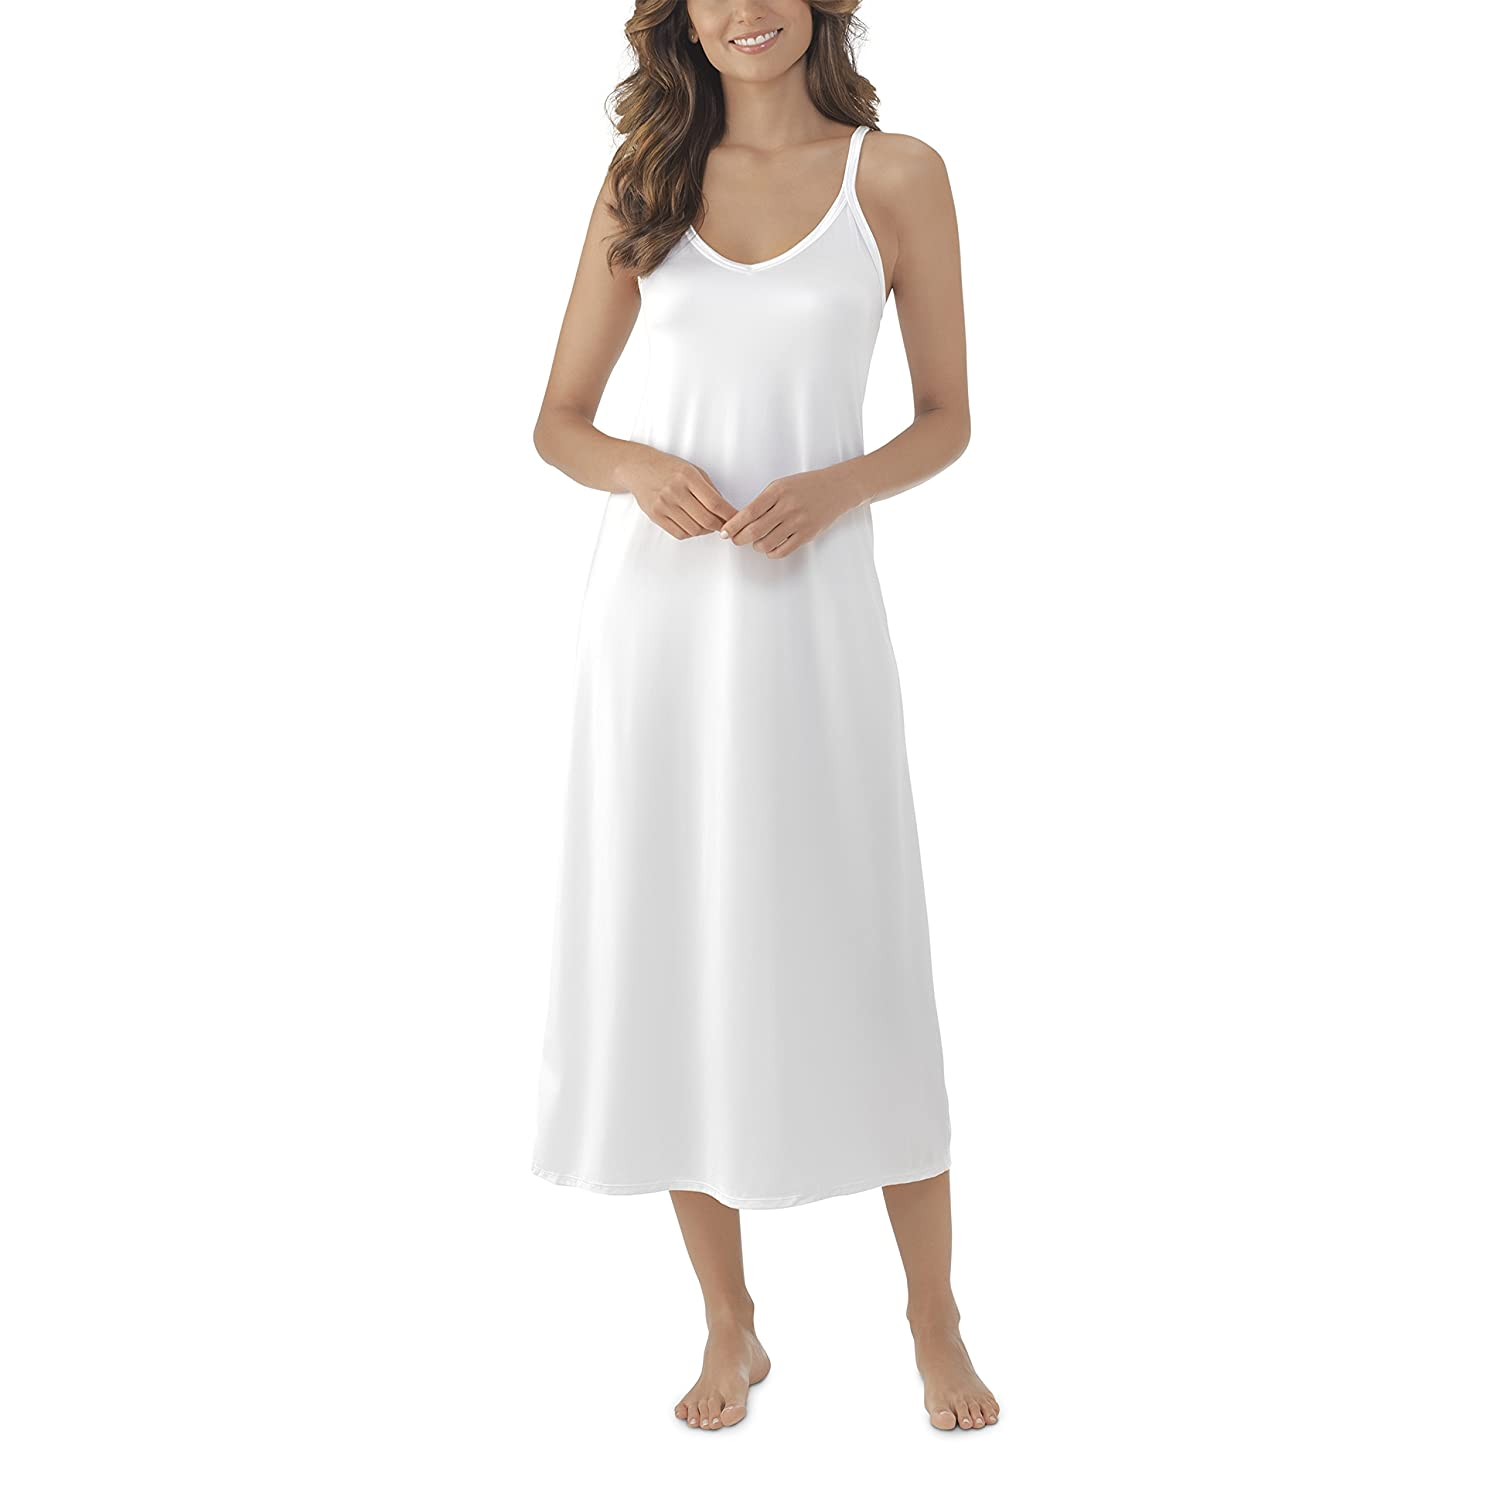 Vanity Fair Women's Spinslip Full Tailored Slip 10158 Vanity Fair Brands LP